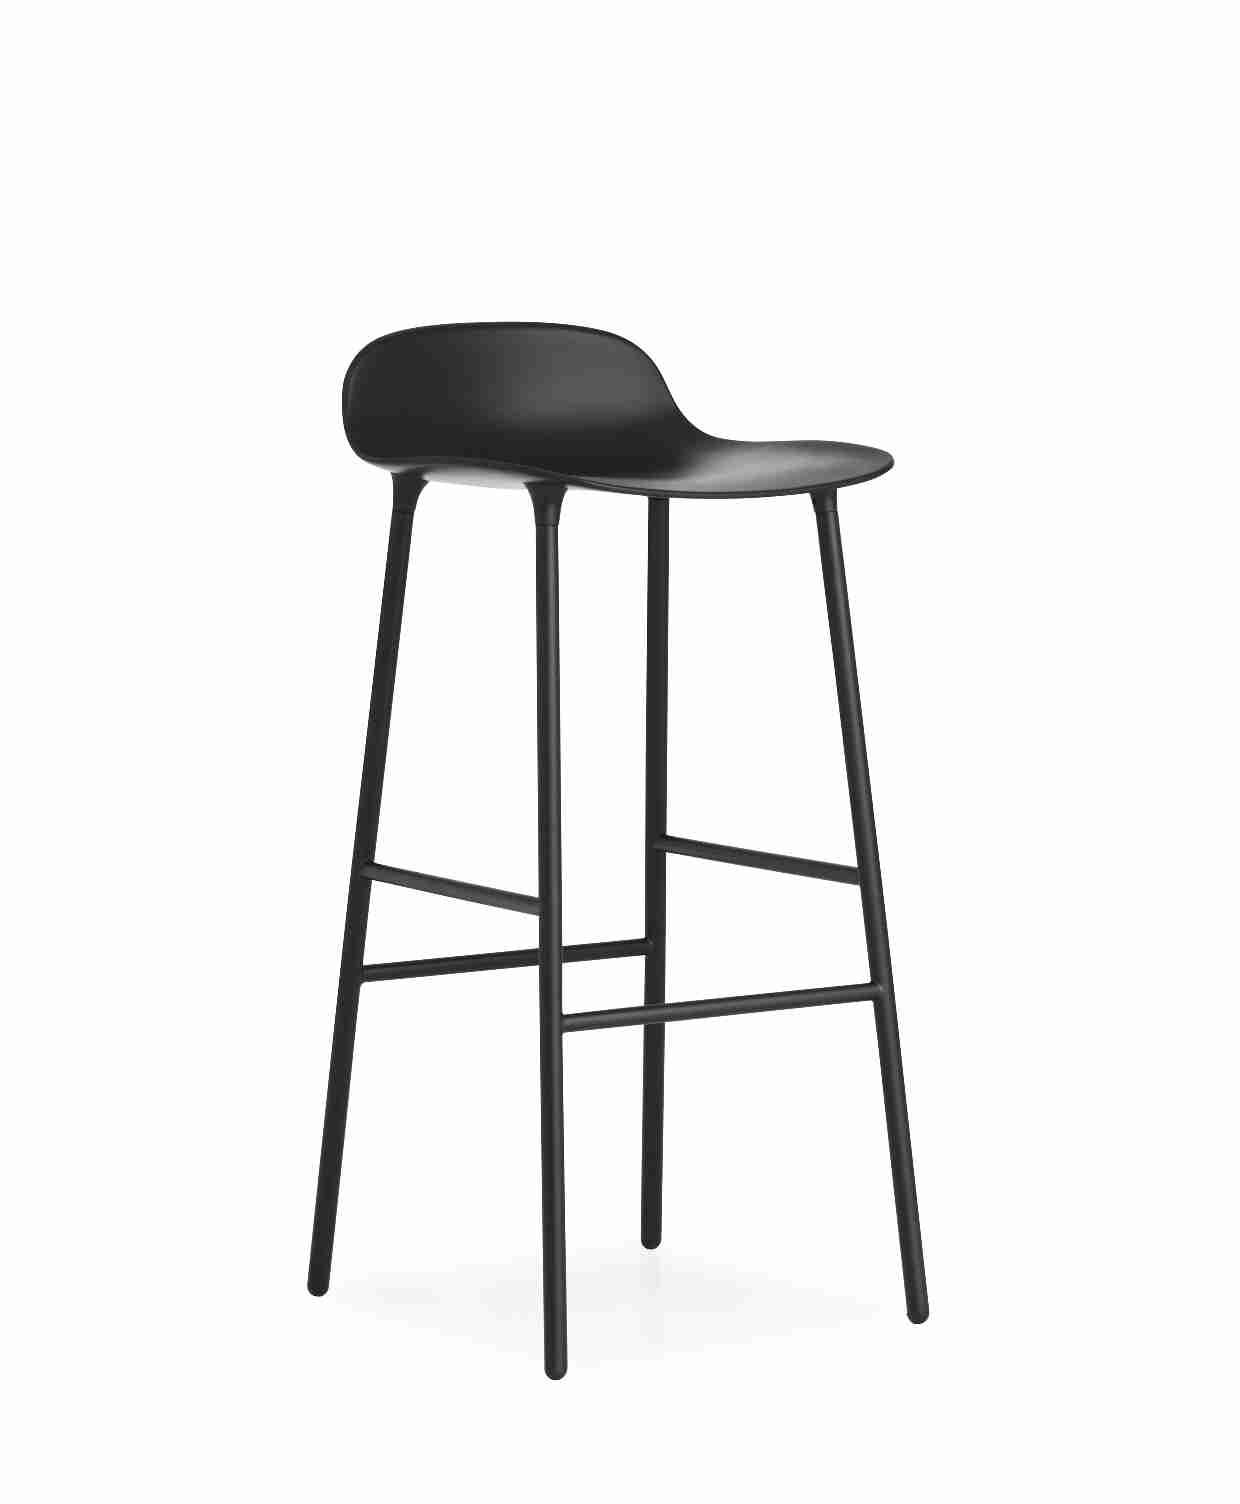 Image of   Normann copenhagen form barstol 75 cm stål (sort)